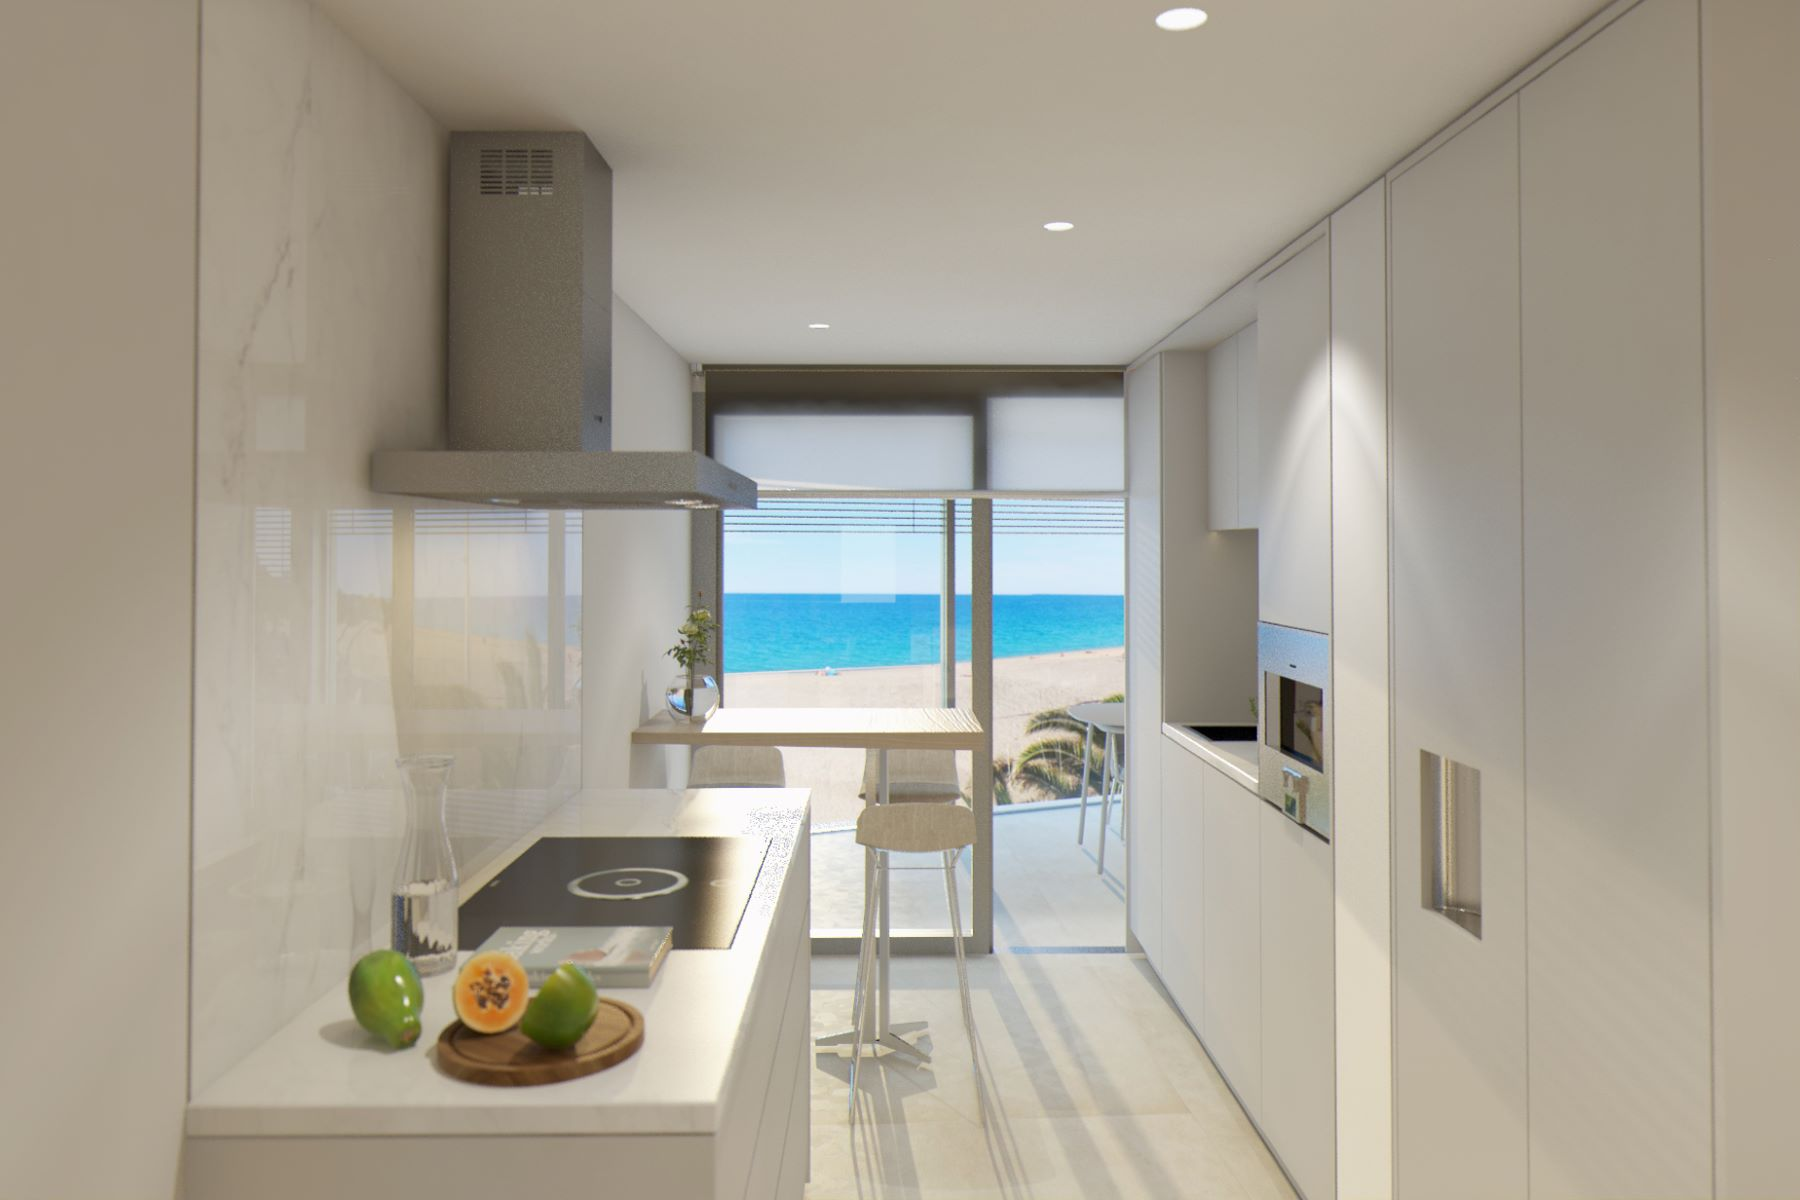 Appartement pour l Vente à First floor apartment with sea views in exclusive new development Playa De Aro, Costa Brava, 17250 Espagne